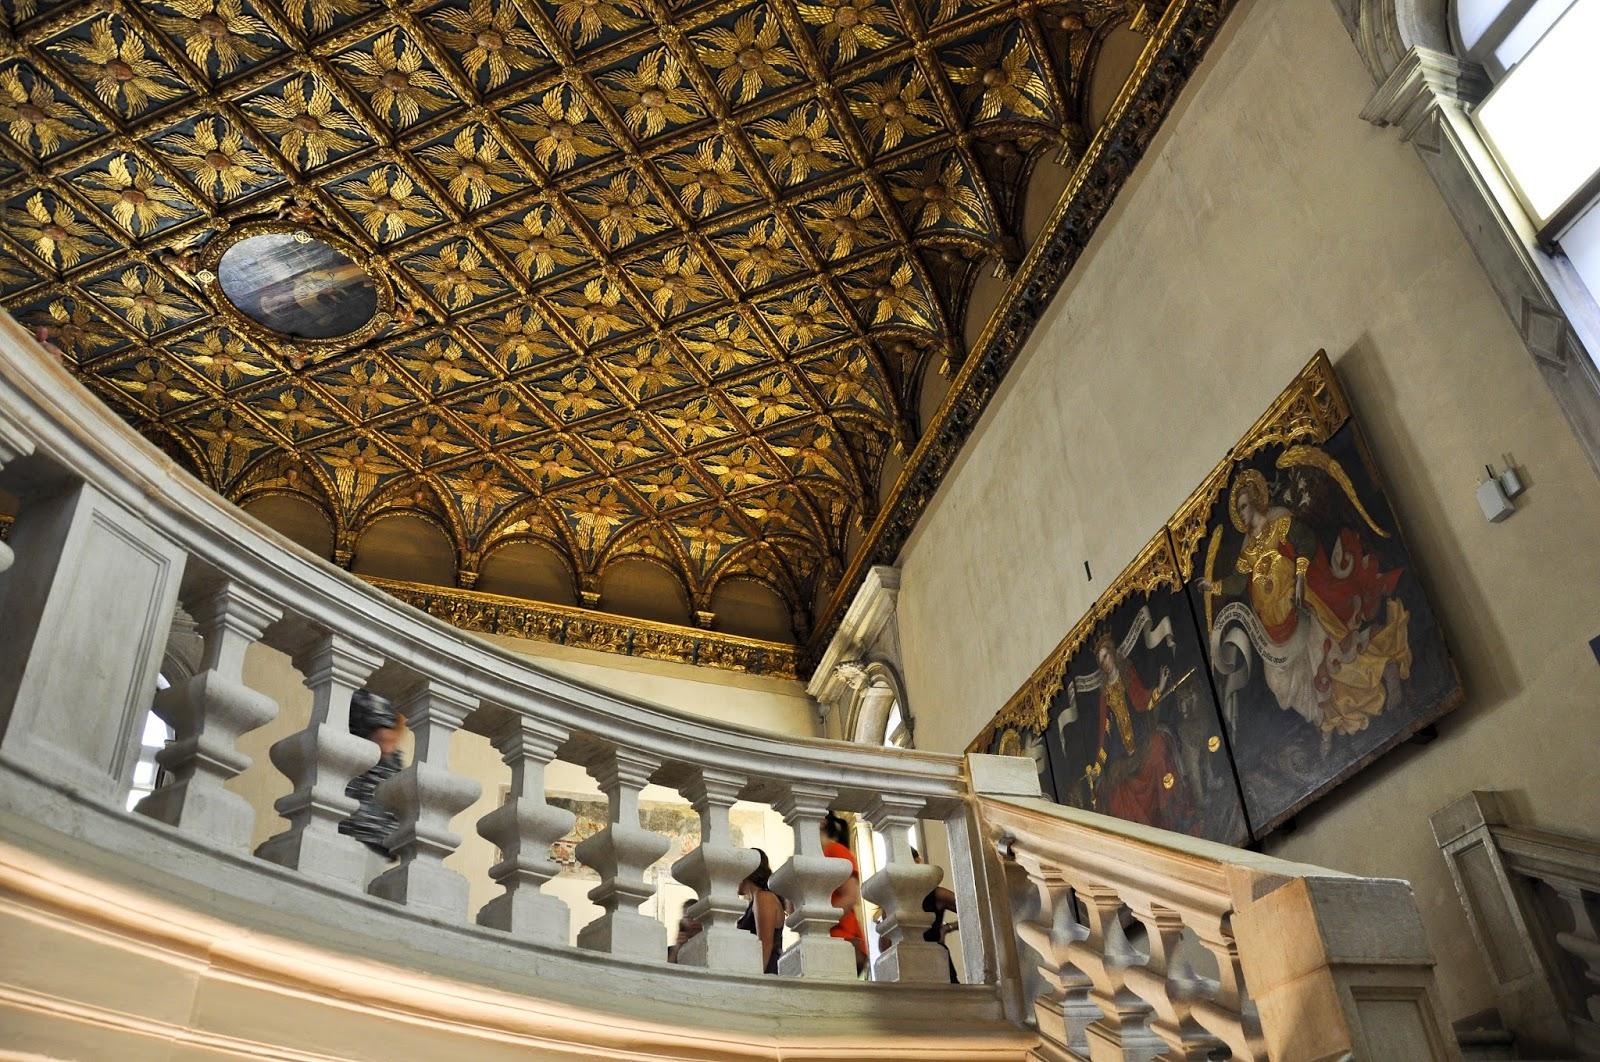 Going up the steps in Gallerie dell'Accademia in Venice